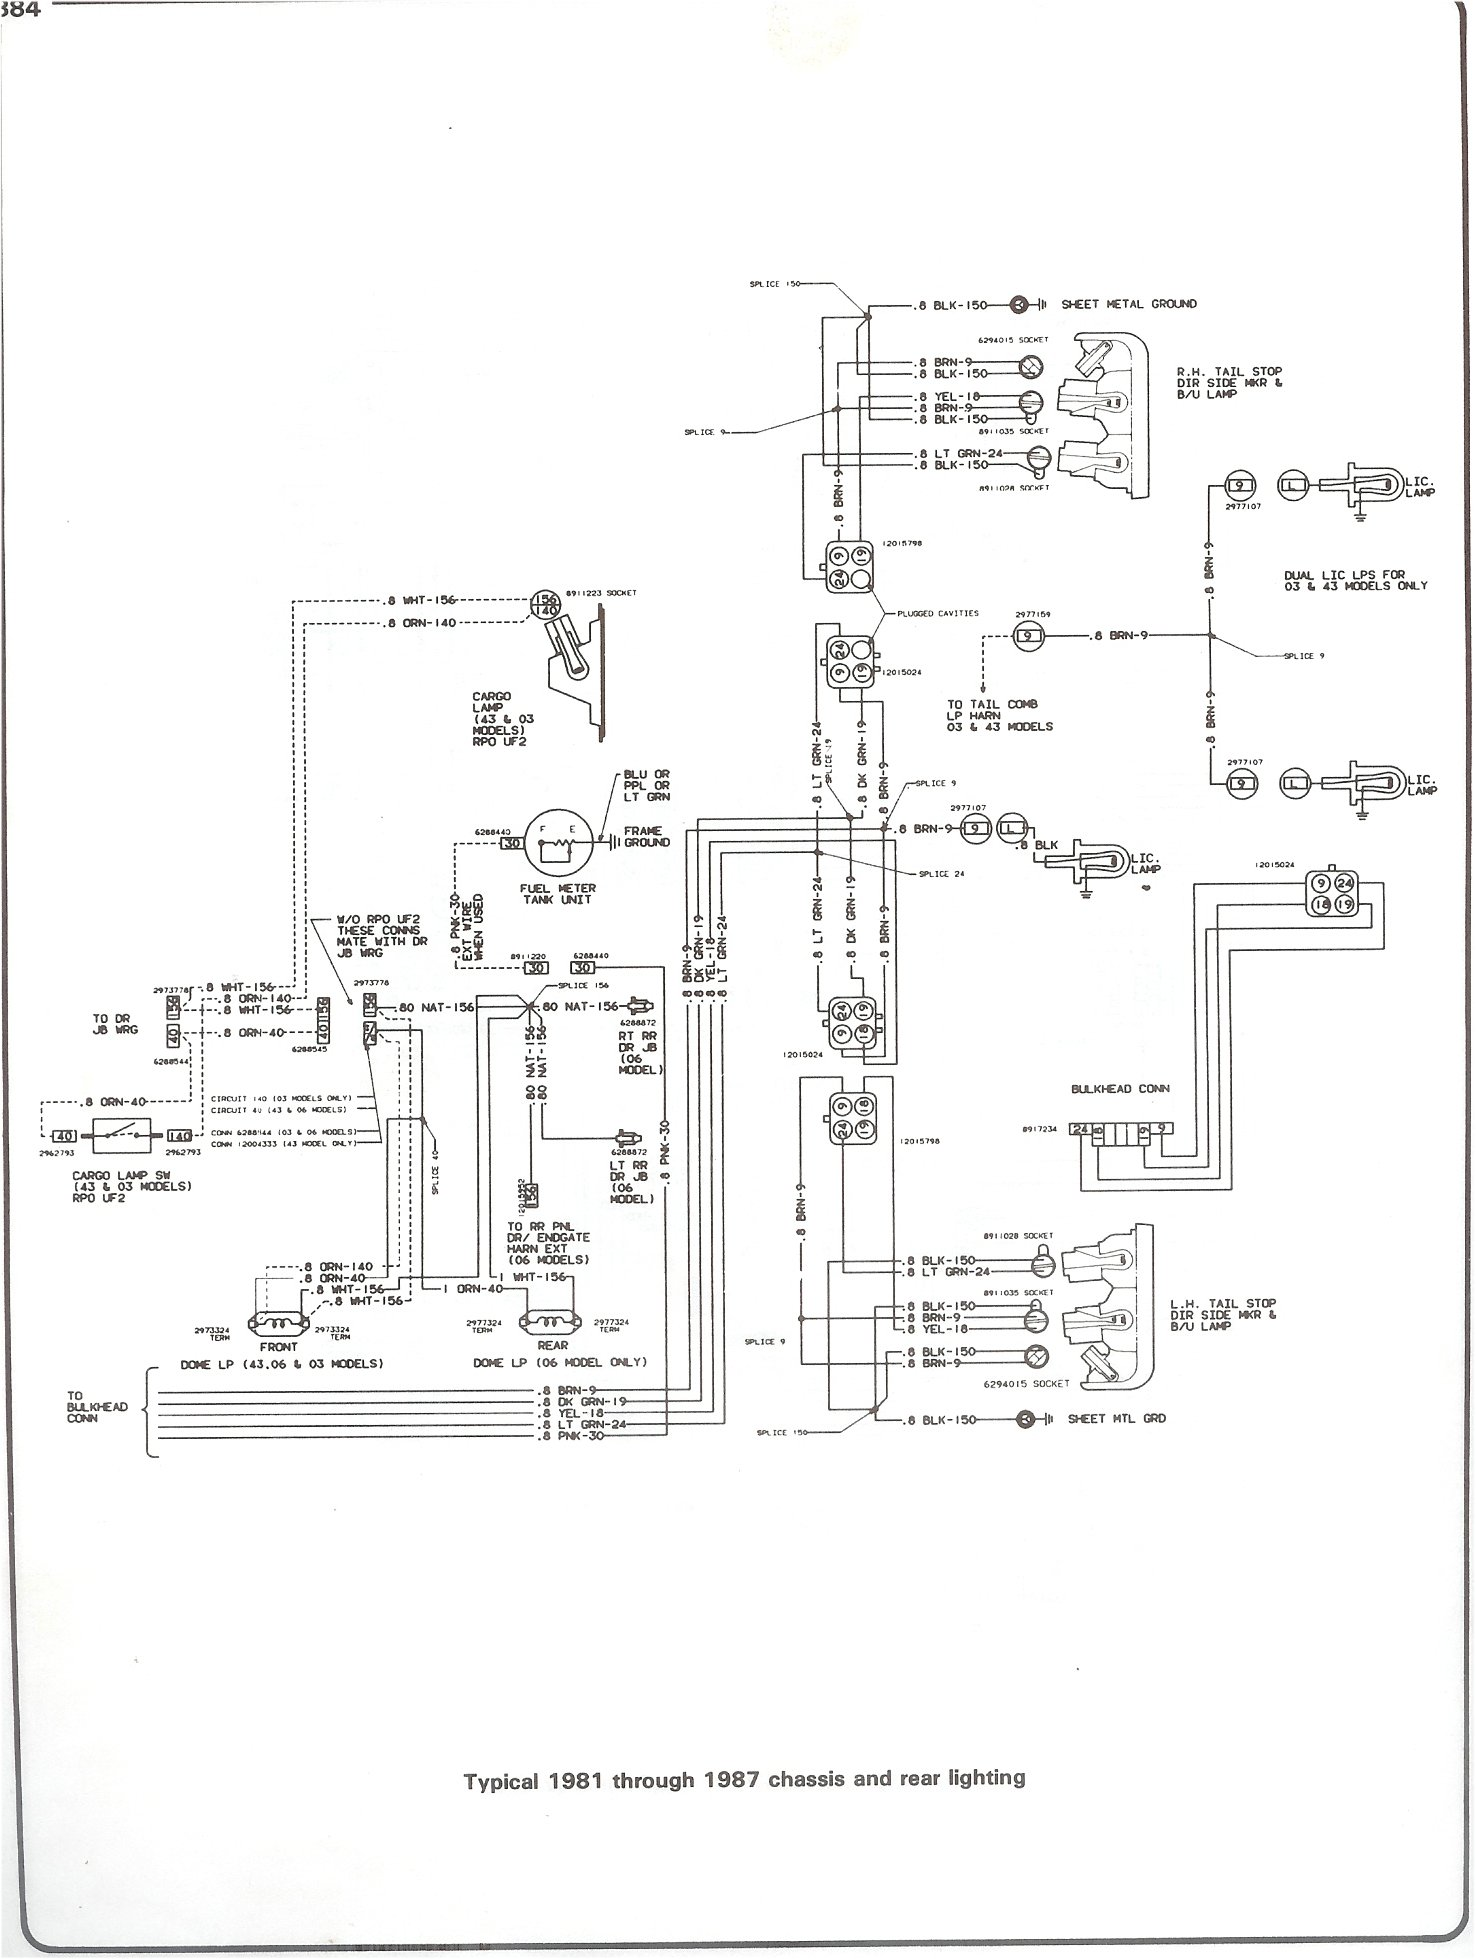 85 suburban wiring diagram wiring data 85 suburban wiring diagram wiring data 81 chevy k10 fuse box diagram plete 73 87 wiring